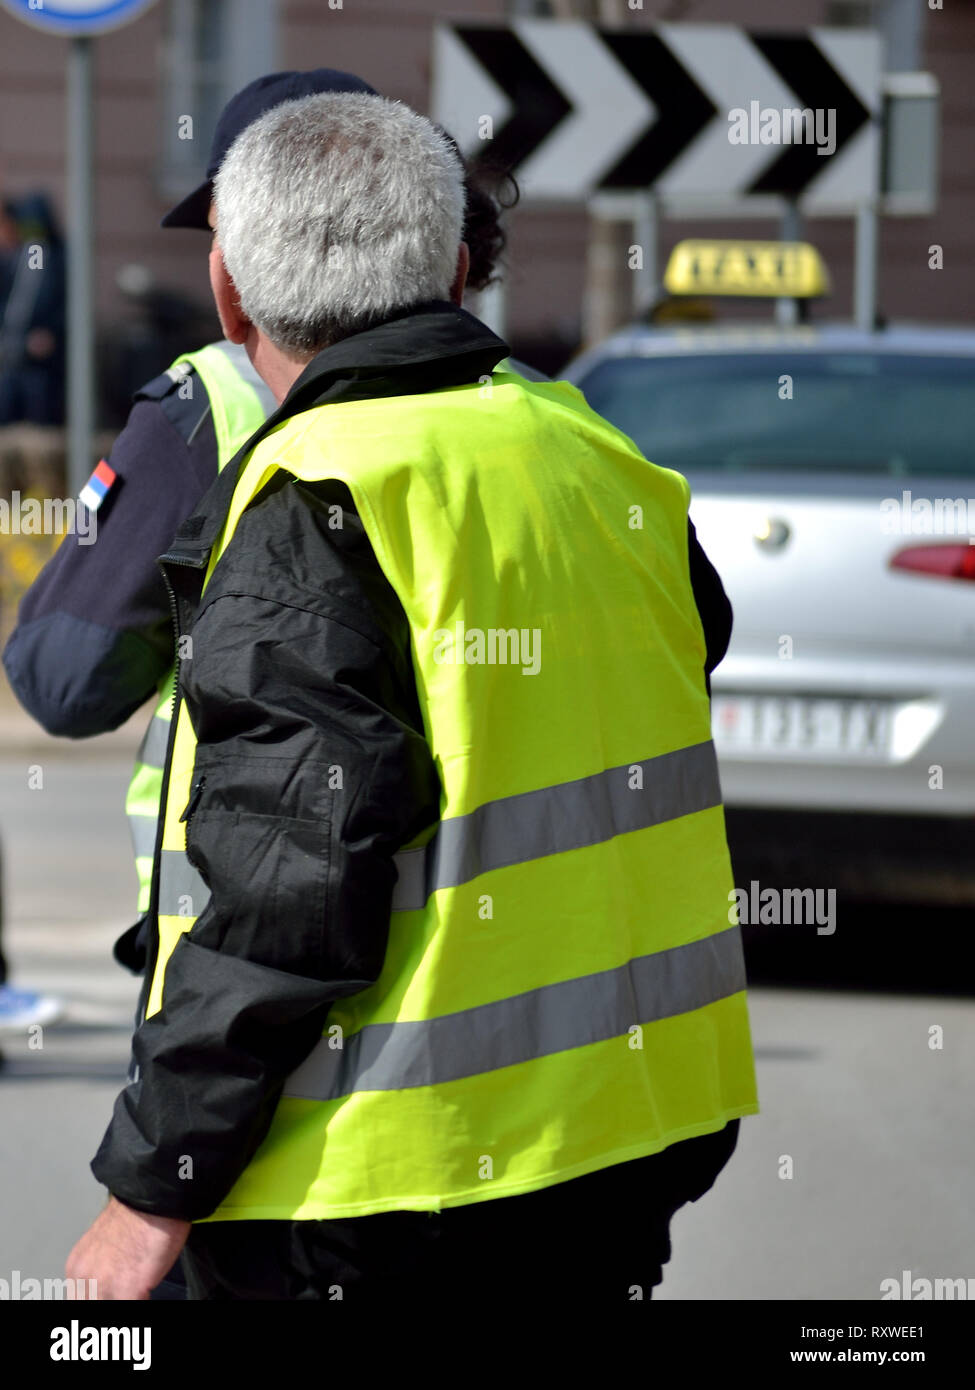 Police officer patrolling a large event in fluorescent yellow waistcoat - Stock Image